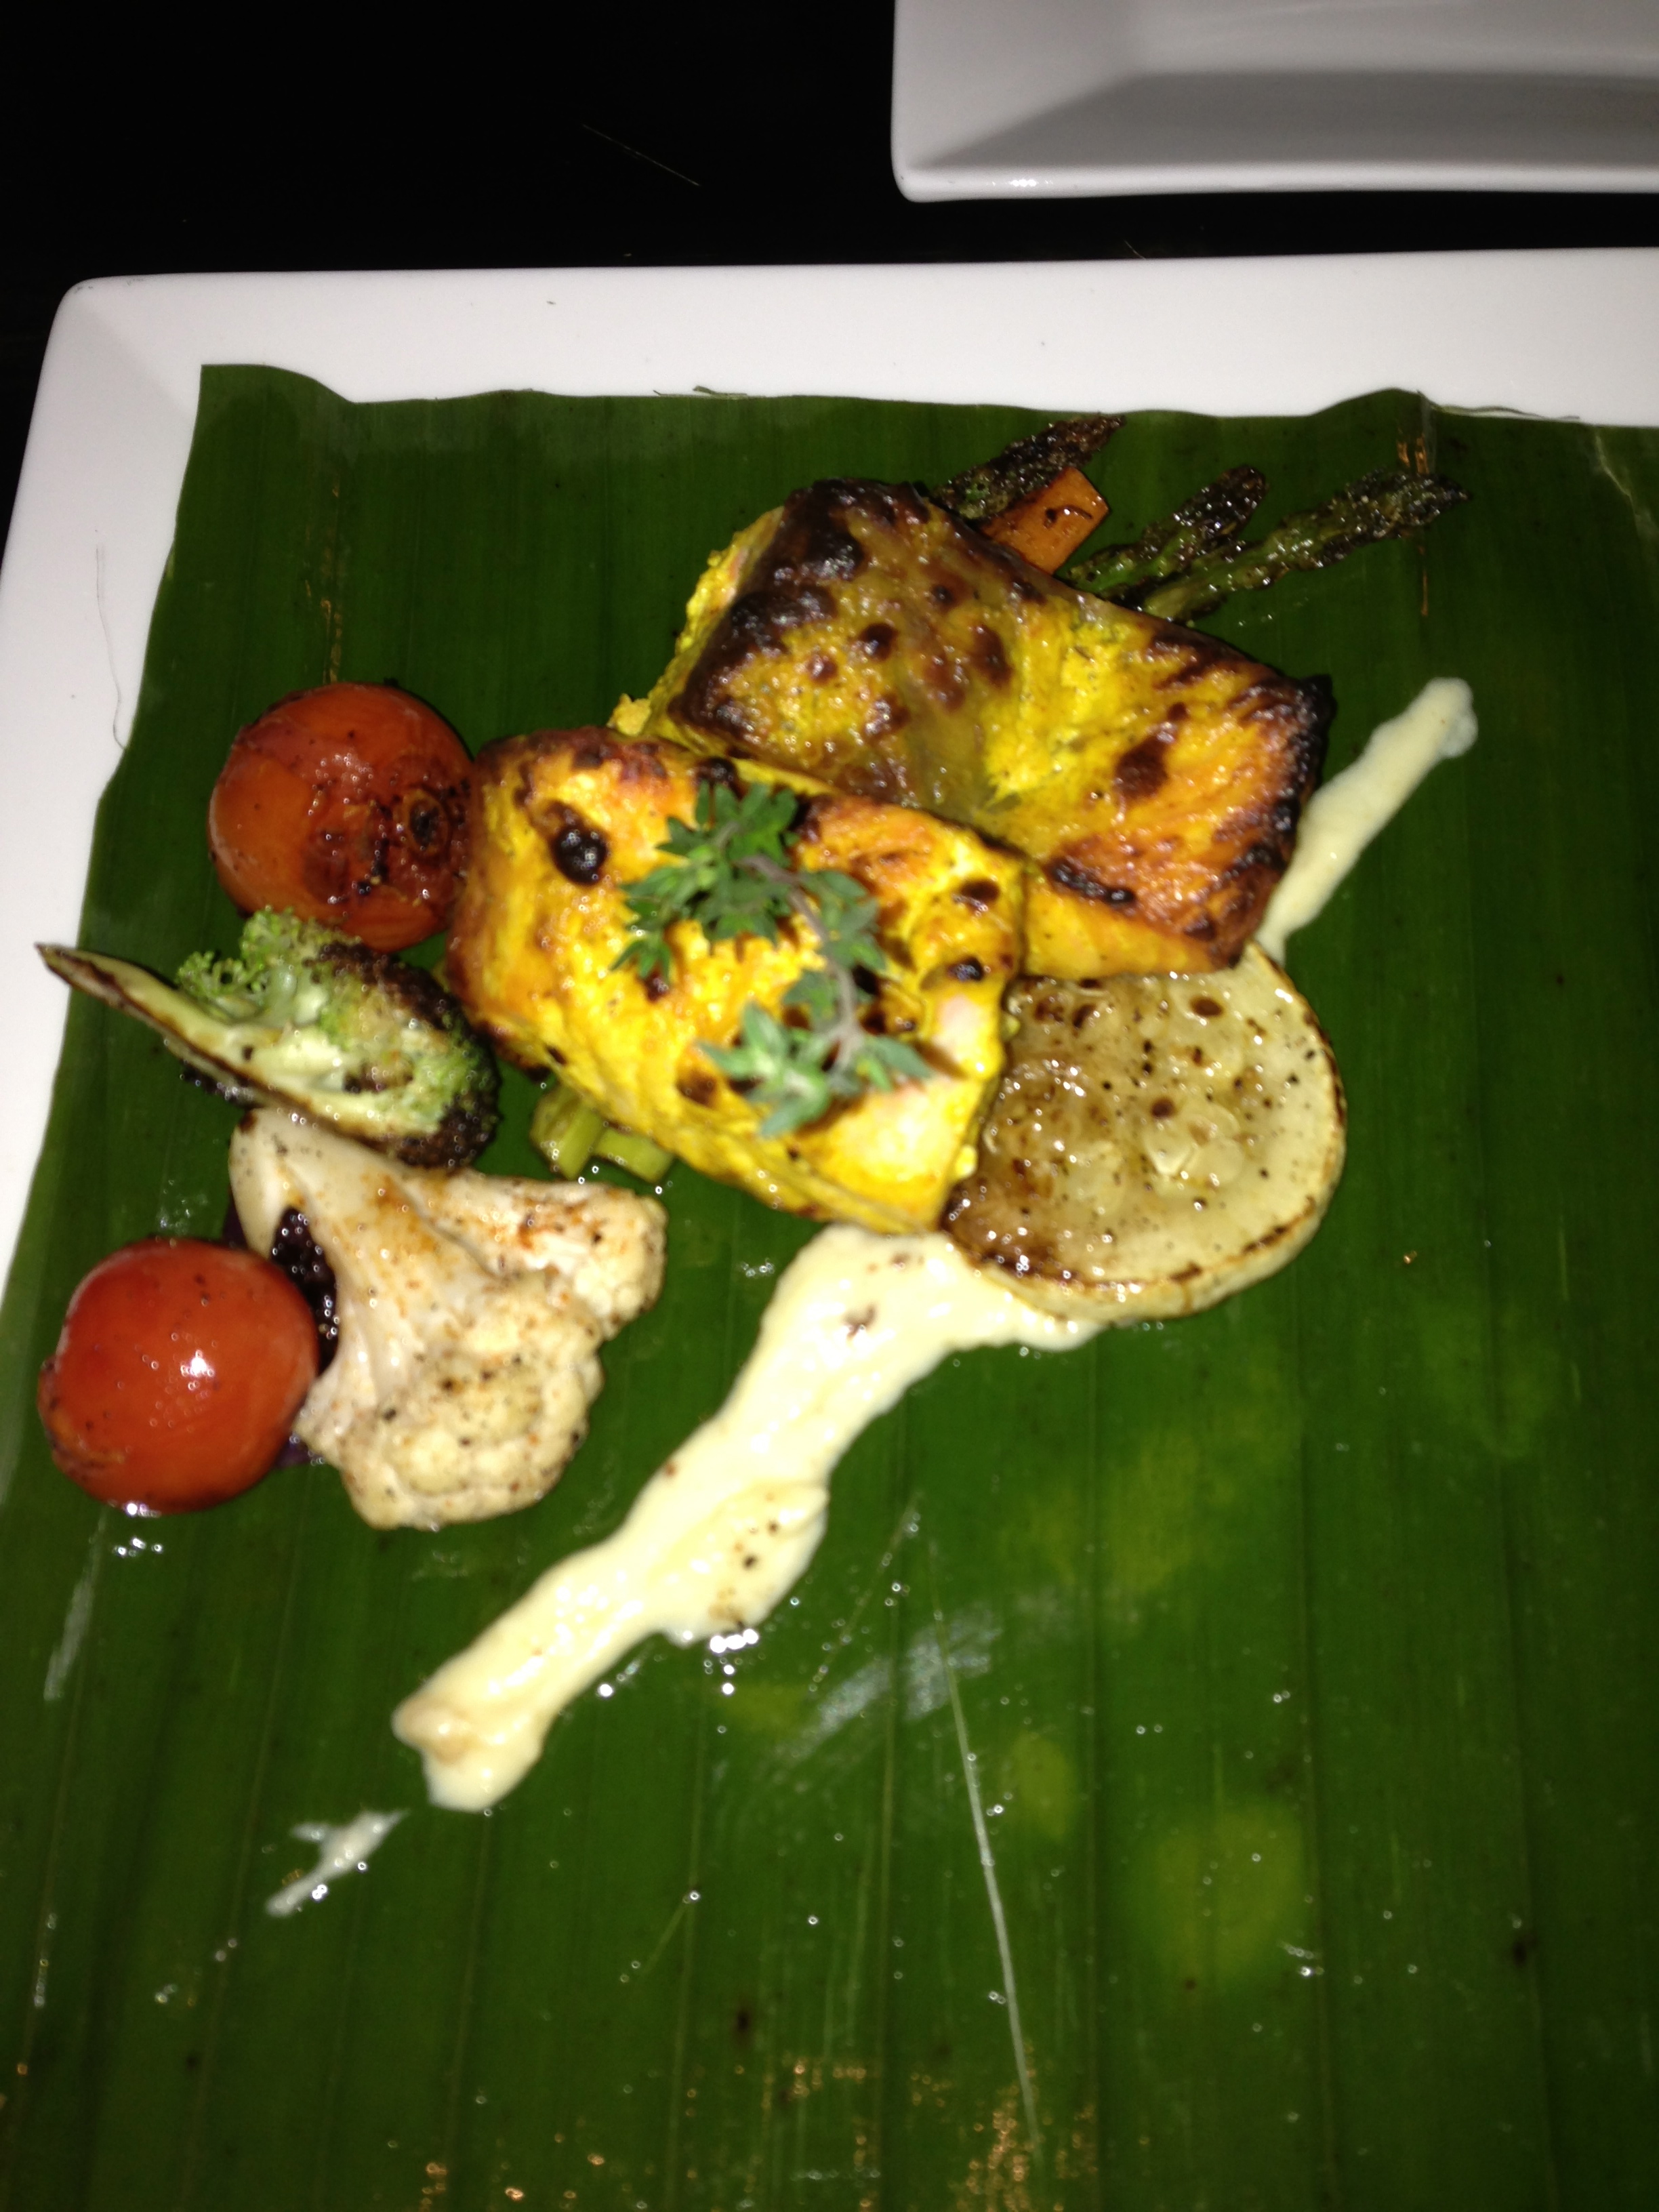 Grilled Fish With Banana Leaf Recipes — Dishmaps